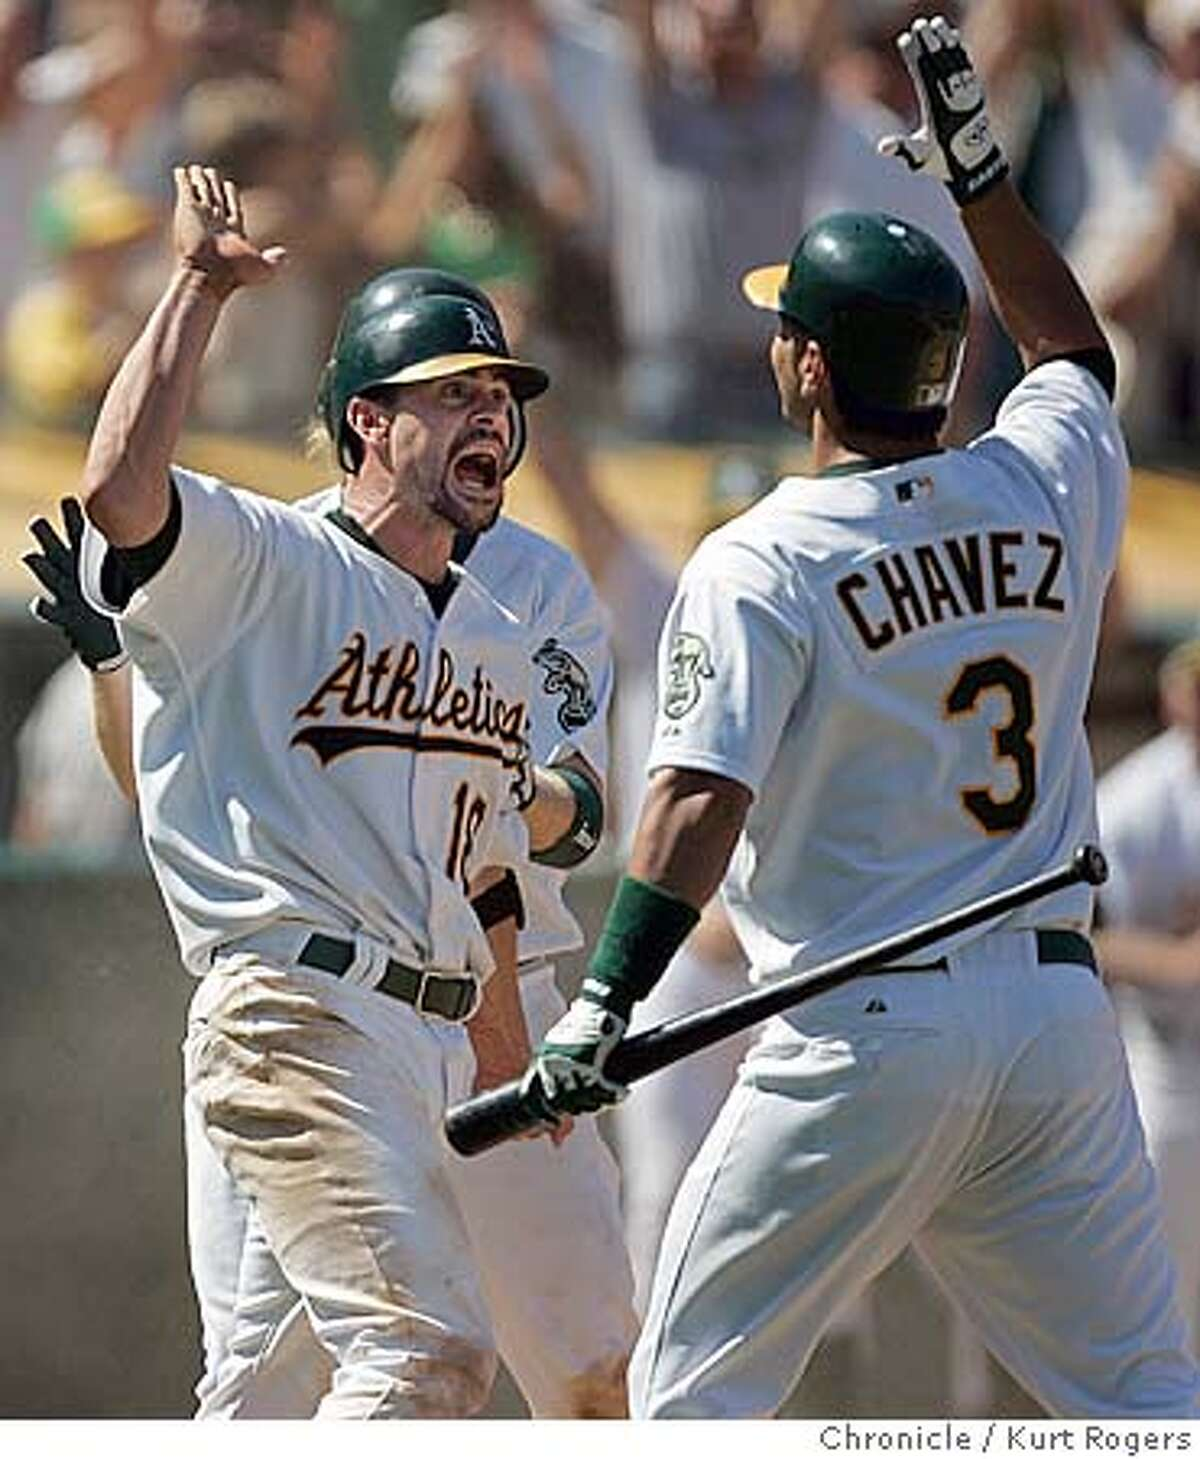 Jason Kendall after scoreing the winning run in the ninth high fives with Eric Chavez. Los Angeles Angels of Anaheim vs. Oakland Athletics . 8/11/05 in Oakland,CA. KURT ROGERS/THE CHRONICLE